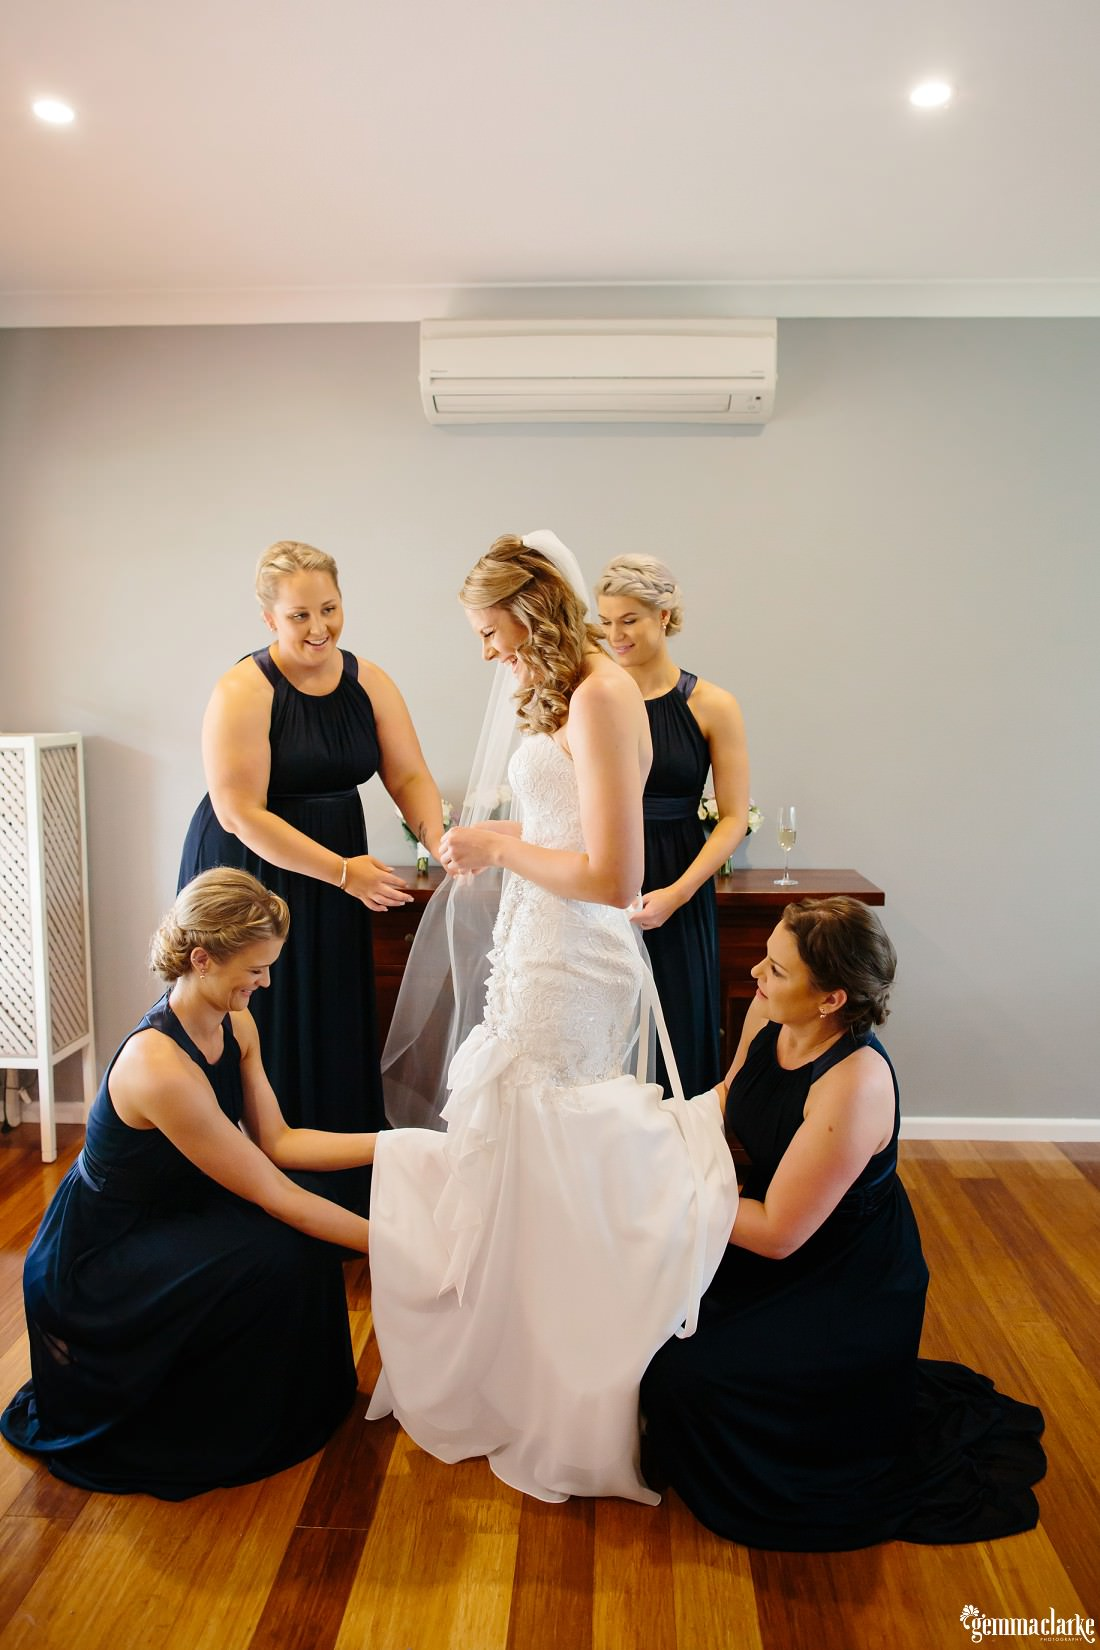 A smiling bride and her four bridesmaids helping her make final adjustments to her dress